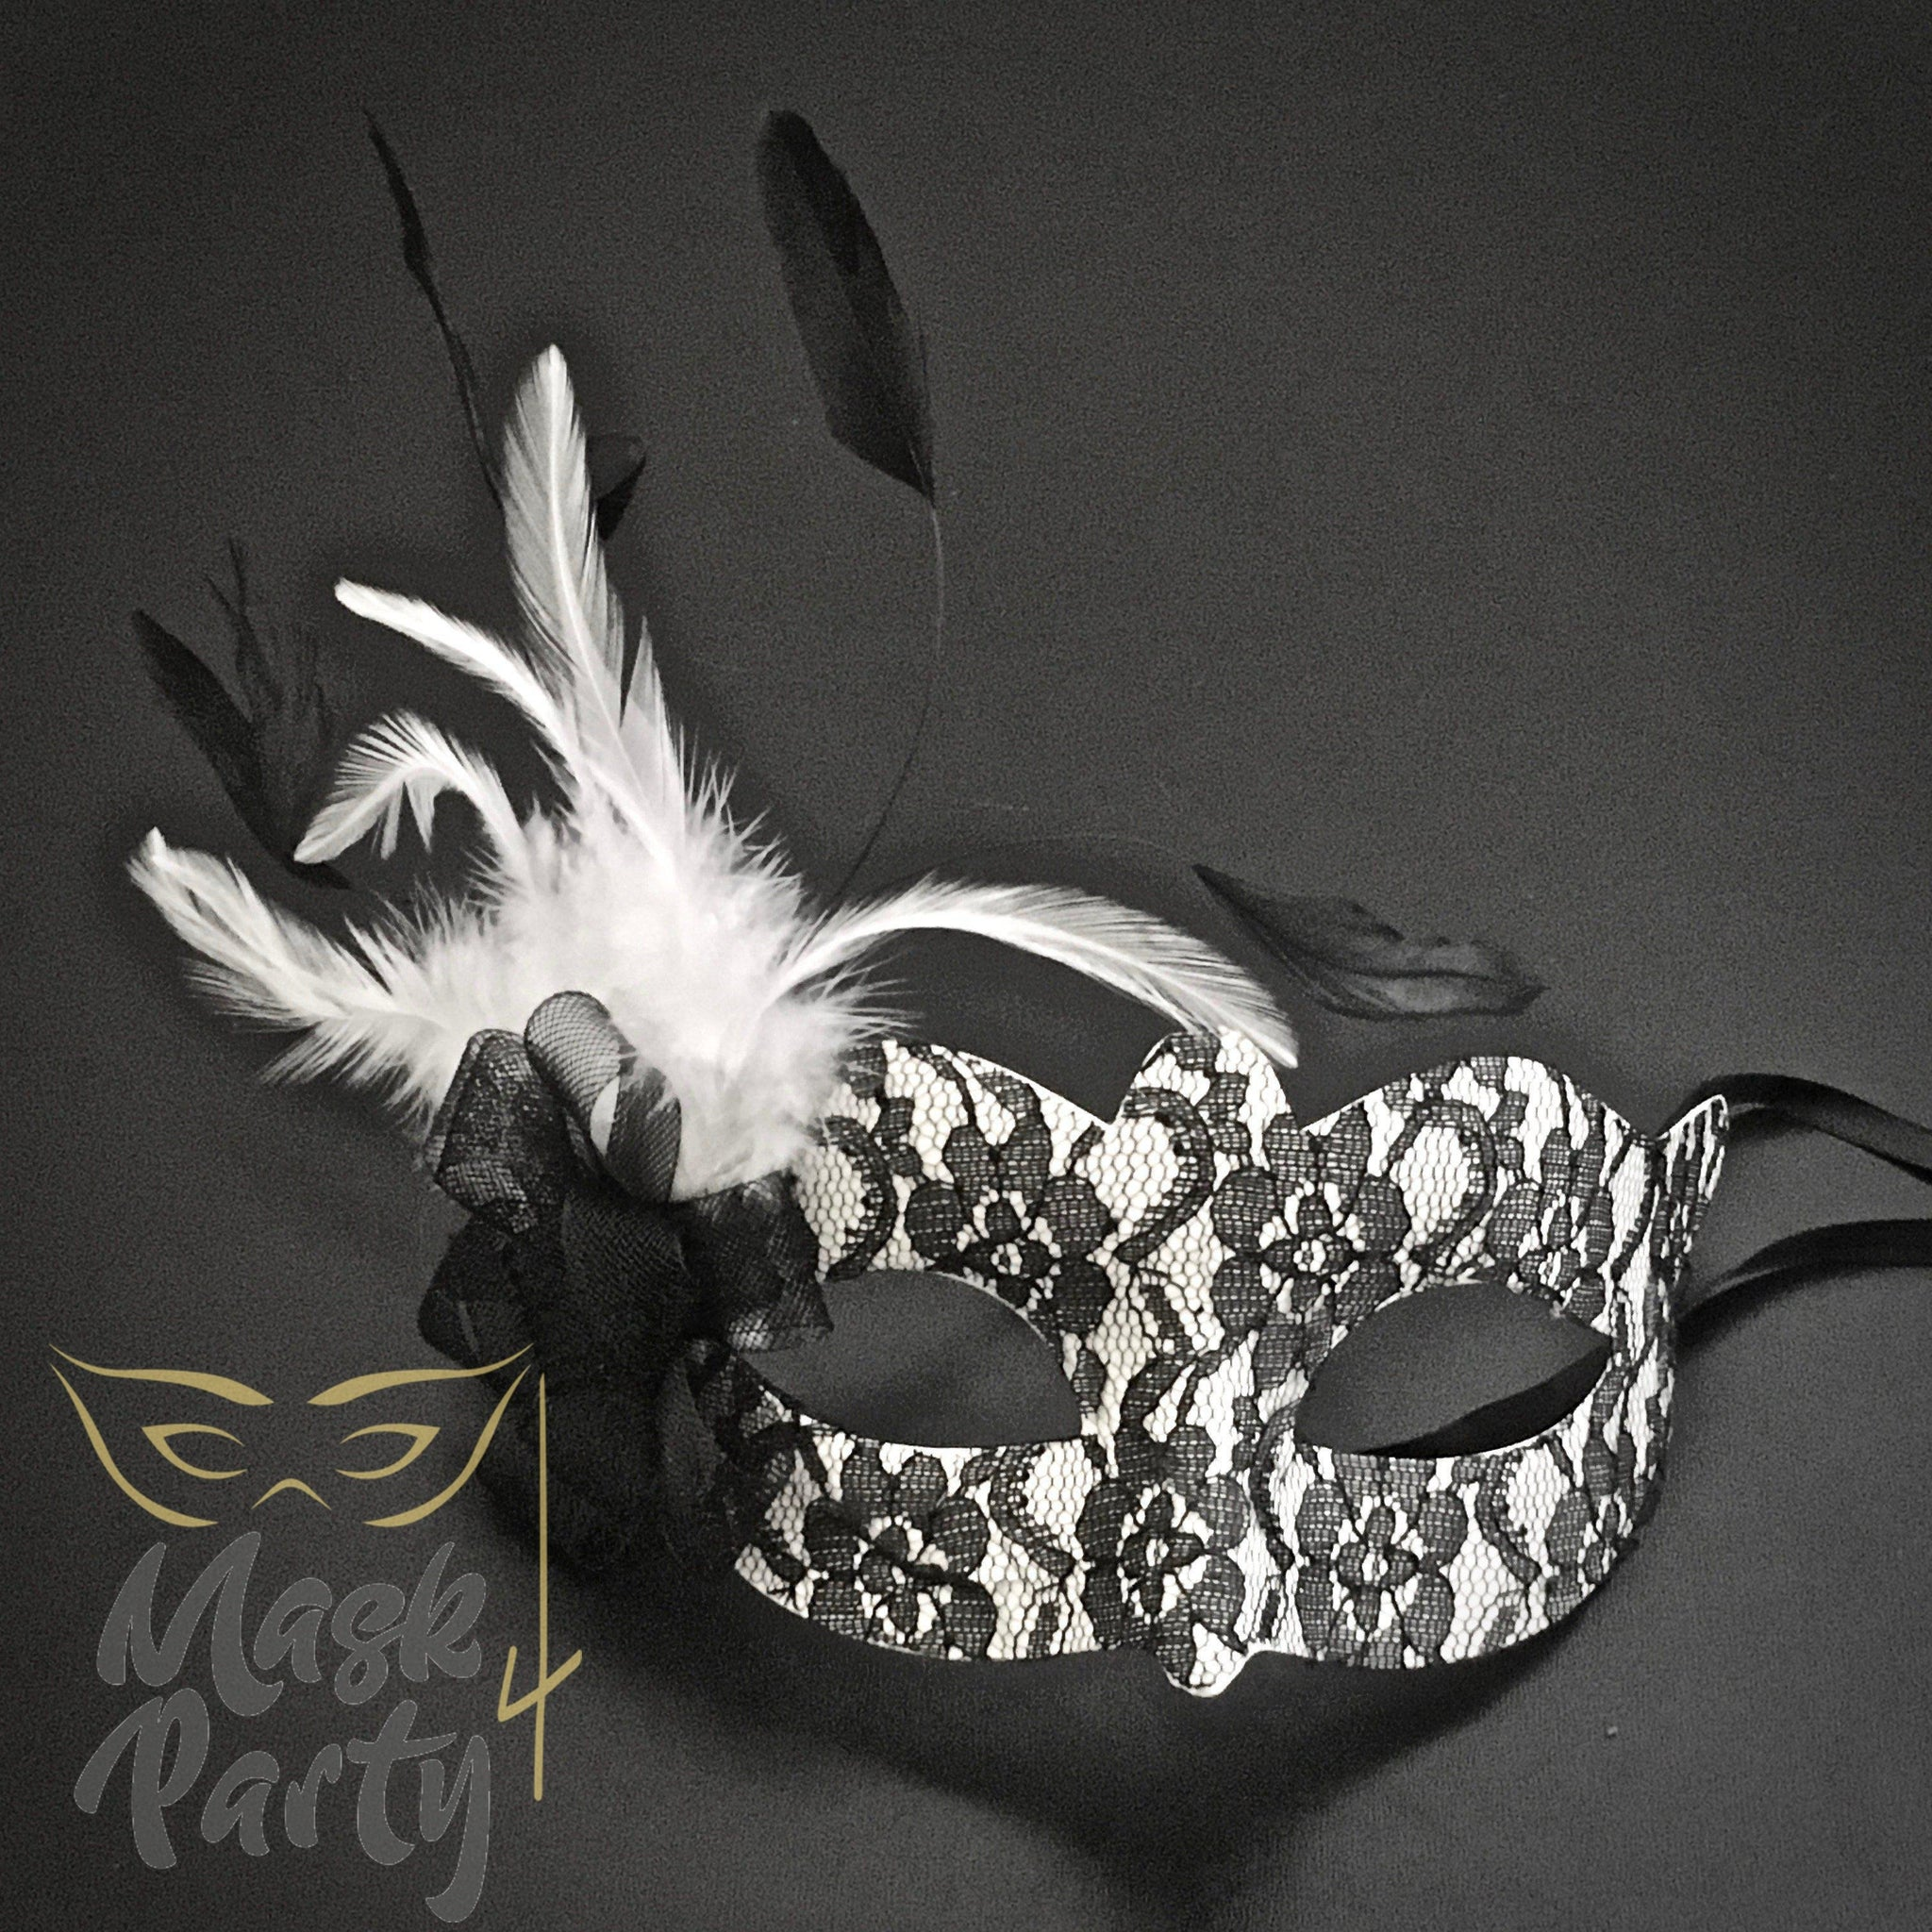 Masquerade Mask - Lace w/ Feather Eye - White/Black - Mask4Party